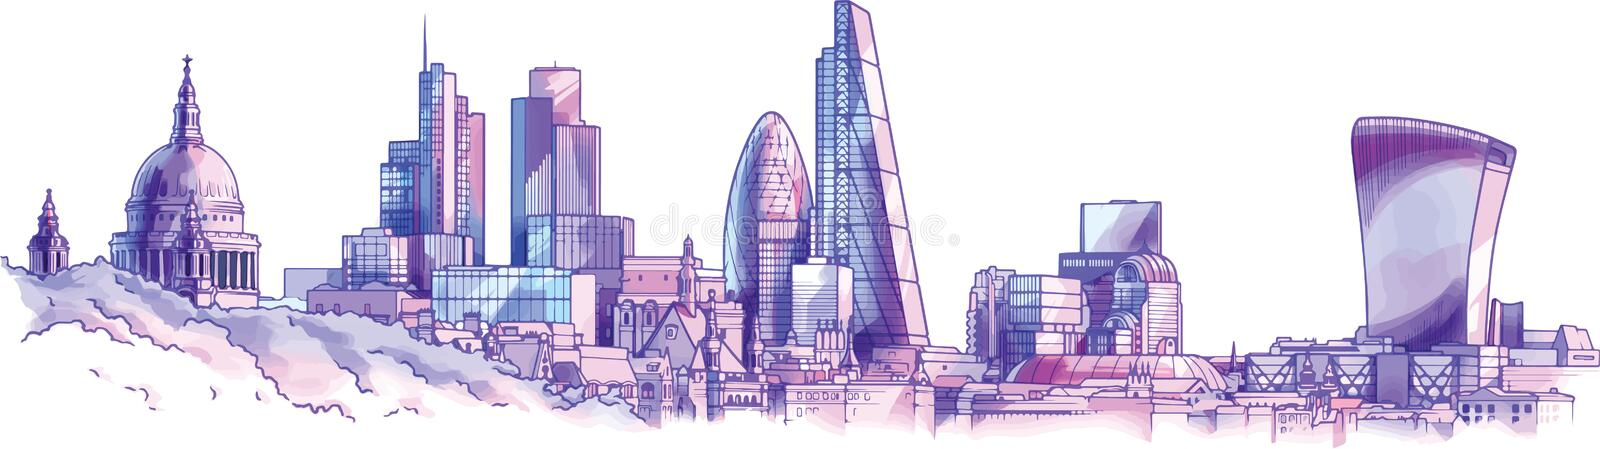 London Skyline royalty free illustration